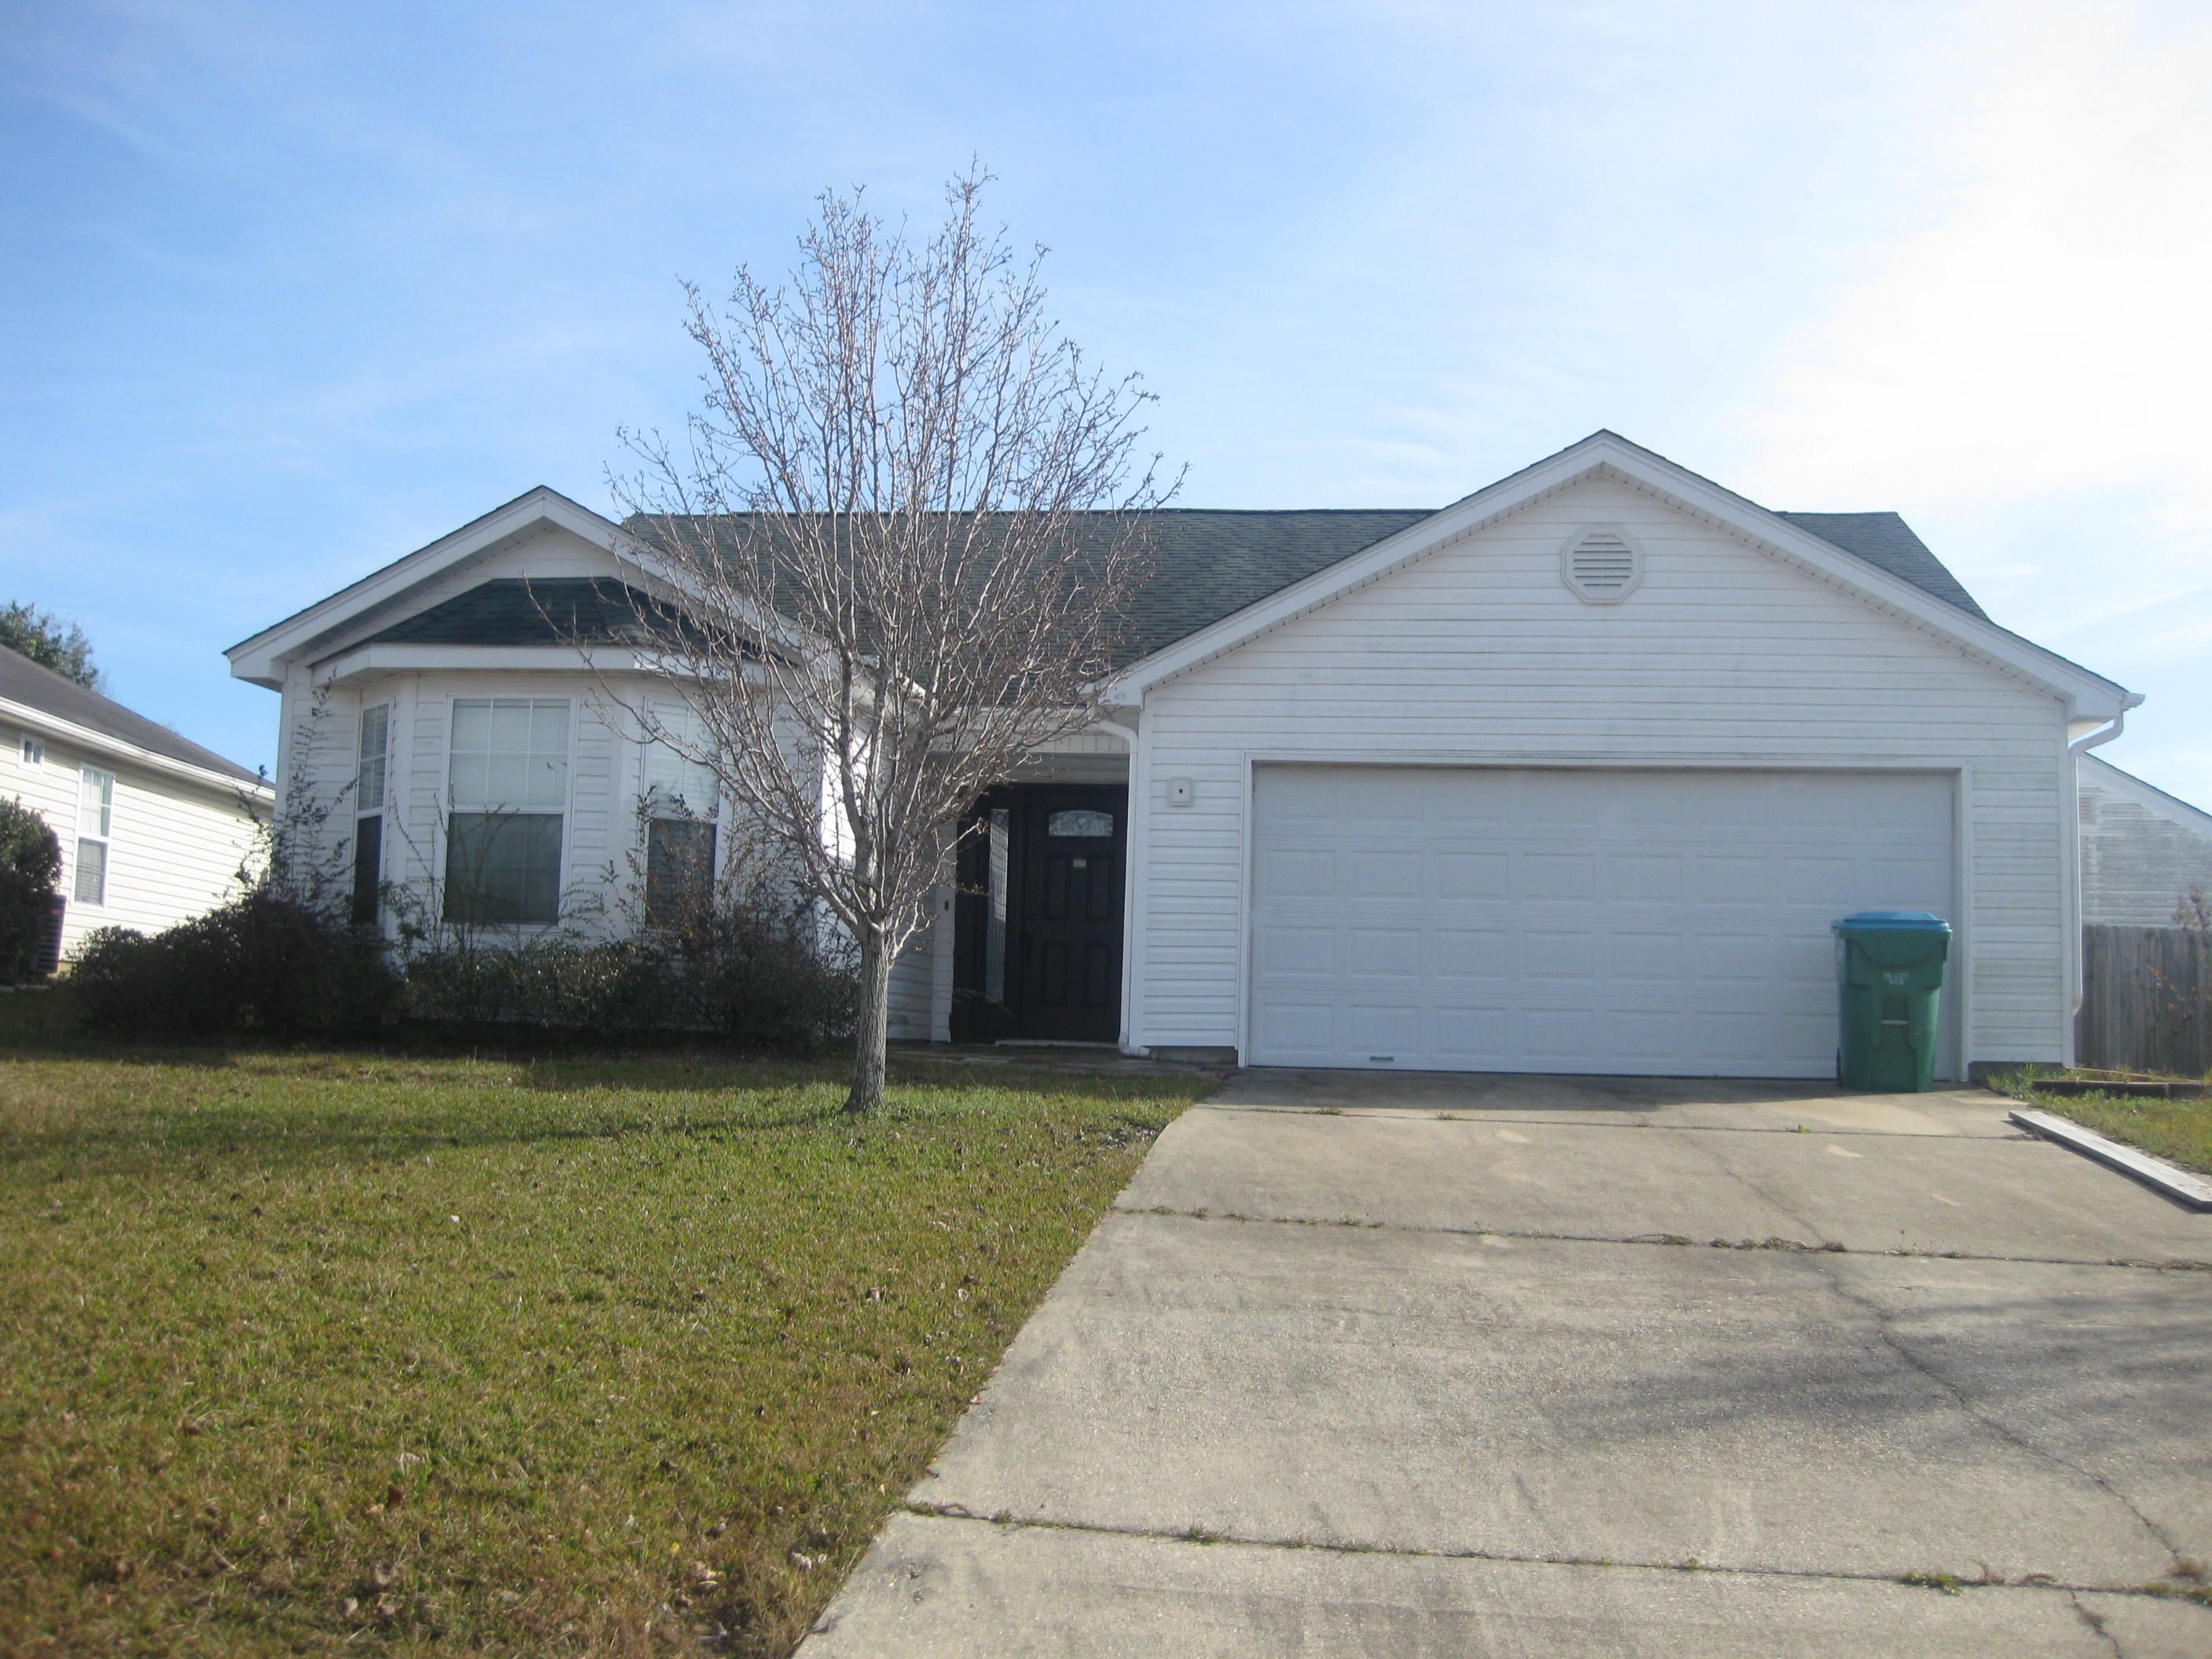 Foreclosure Home For Sale Ms Gulf Coast Property Search Foreclosures Property